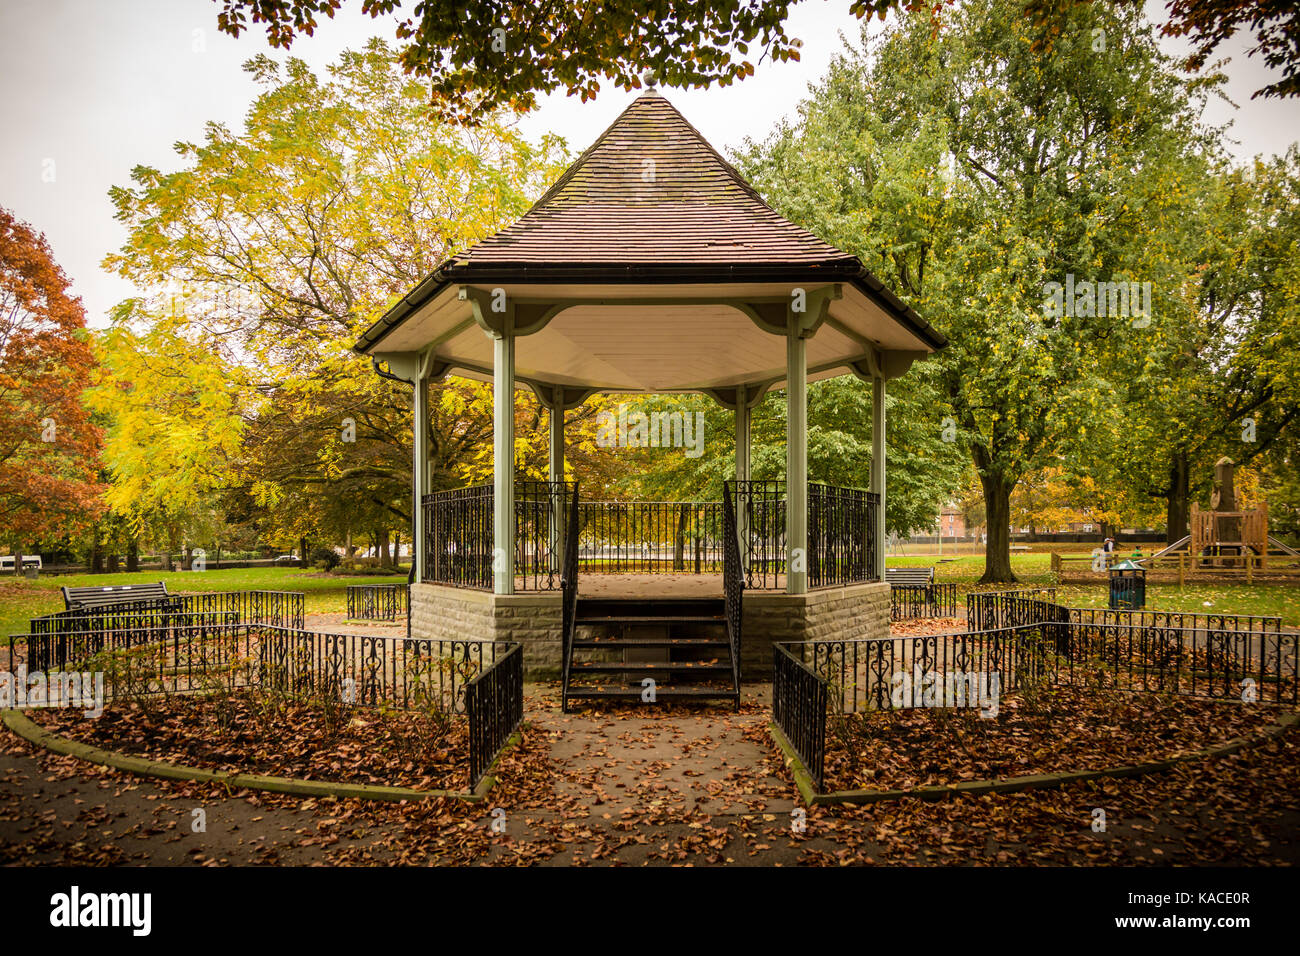 Bandstand in Page Park, Staple Hill, Bristol - Stock Image